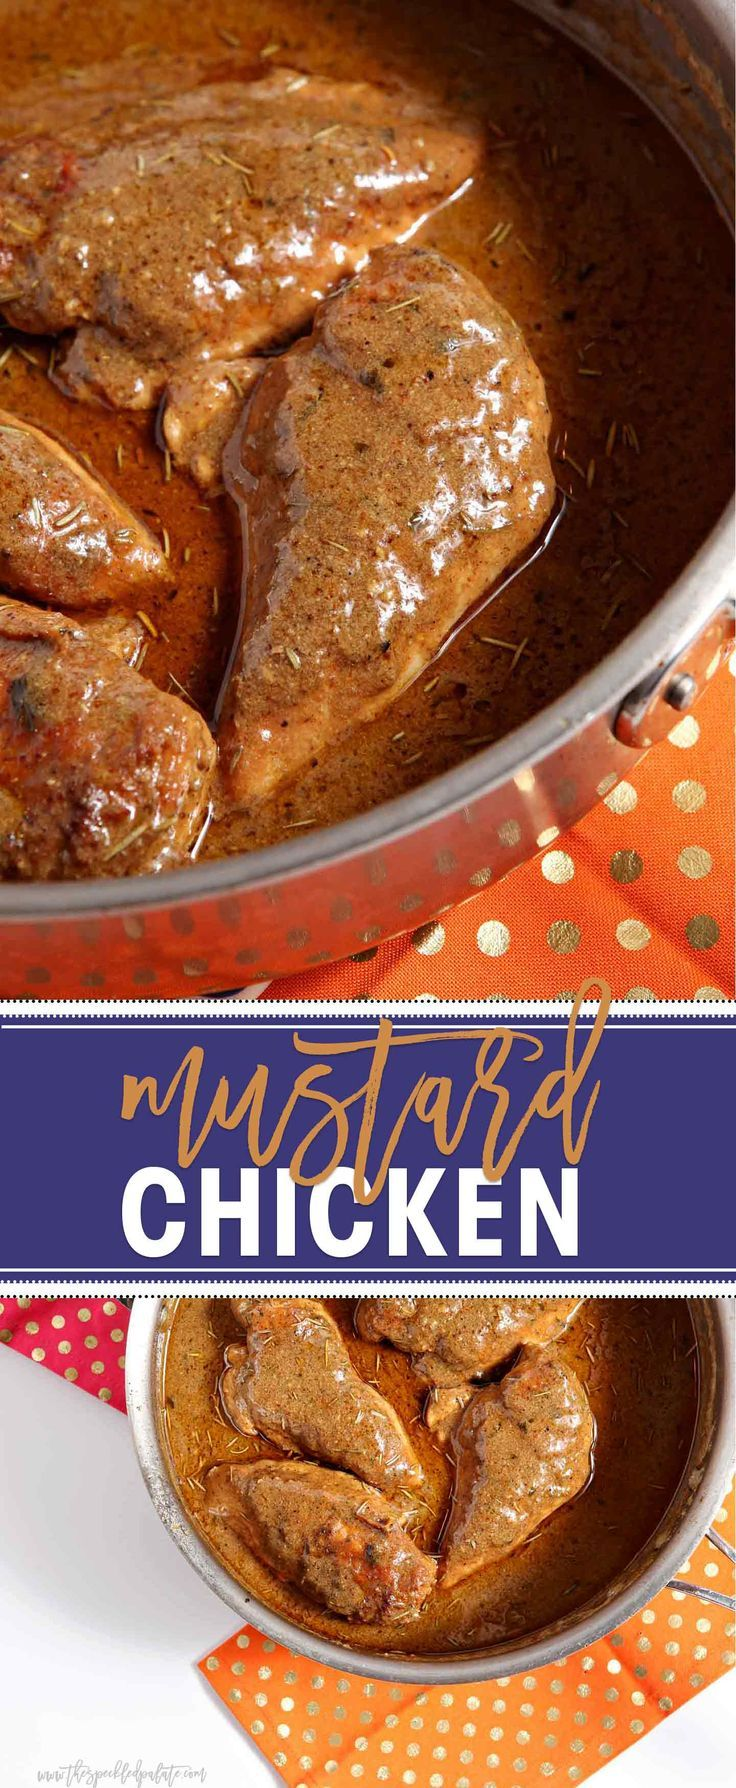 Mustard Chicken is an entree the whole family will love, and it can be on the table in less than 45 minutes. Chicken breasts are seasoned and seared, then a creamy mustard sauce is created using the pan drippings, chicken stock, milk, Dijon mustard and dried herbs. Pop the chicken back into the sauce and simmer until ready. Serve the chicken over rice and smother with the decadent mustard sauce. Enjoy with bread so you can sop up more sauce!: